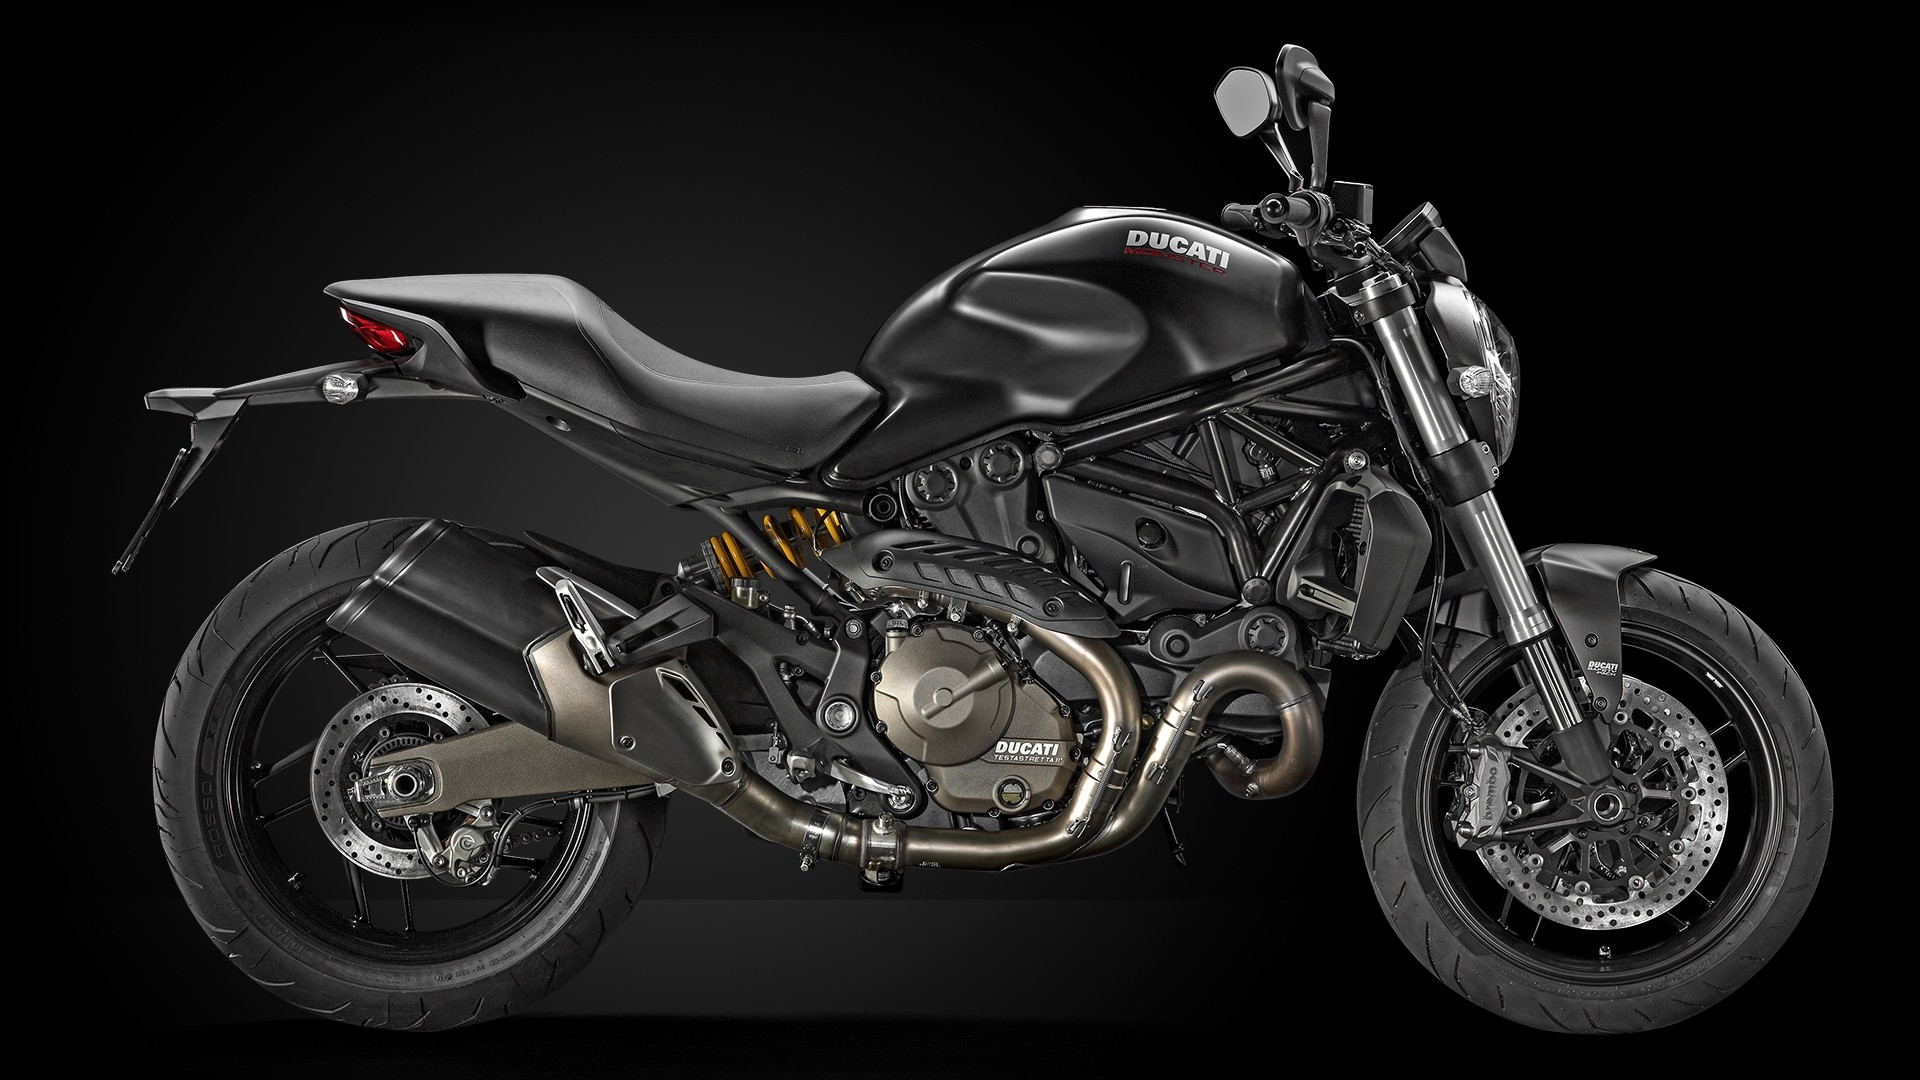 Ducati Monster 821 images #79386